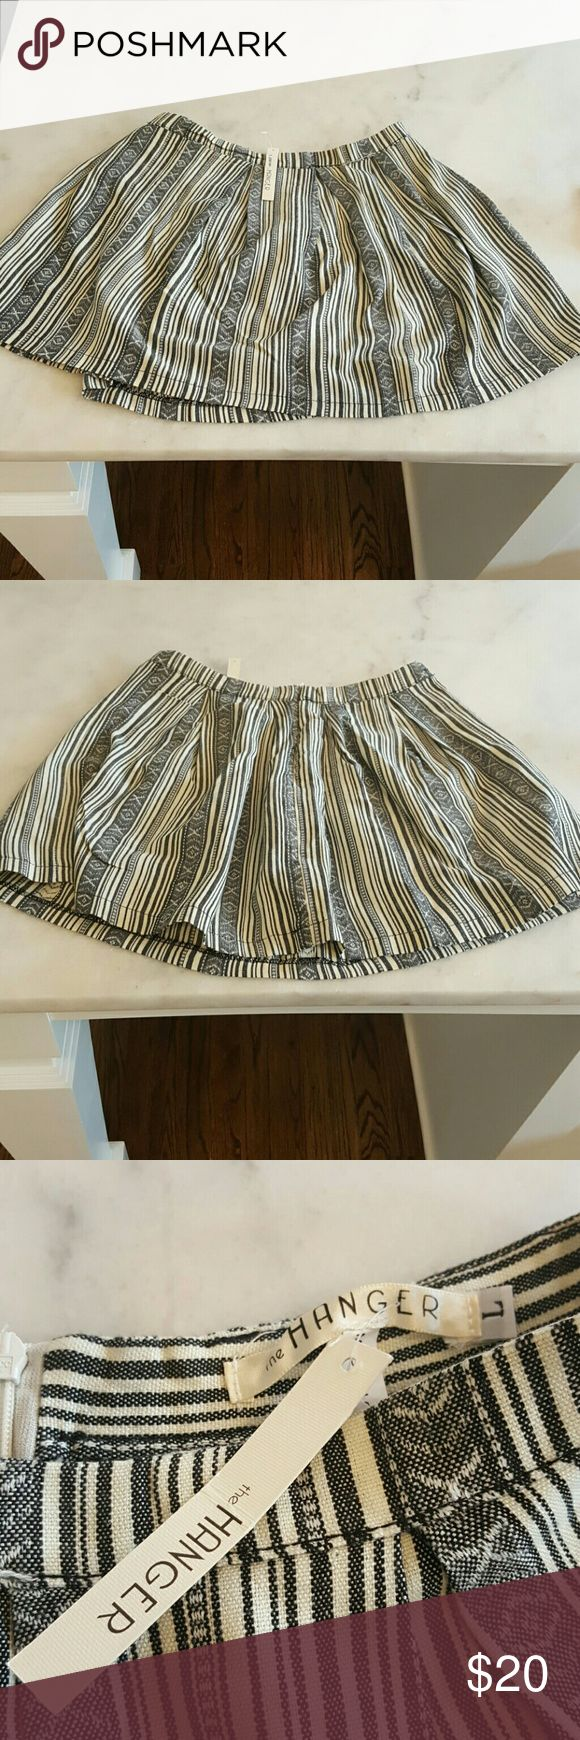 Tribal Print Skirt BRAND NEW w/ Tags 100% Polyester  Tribal Print  Hand wash cold or Dry Clean The Hanger Skirts